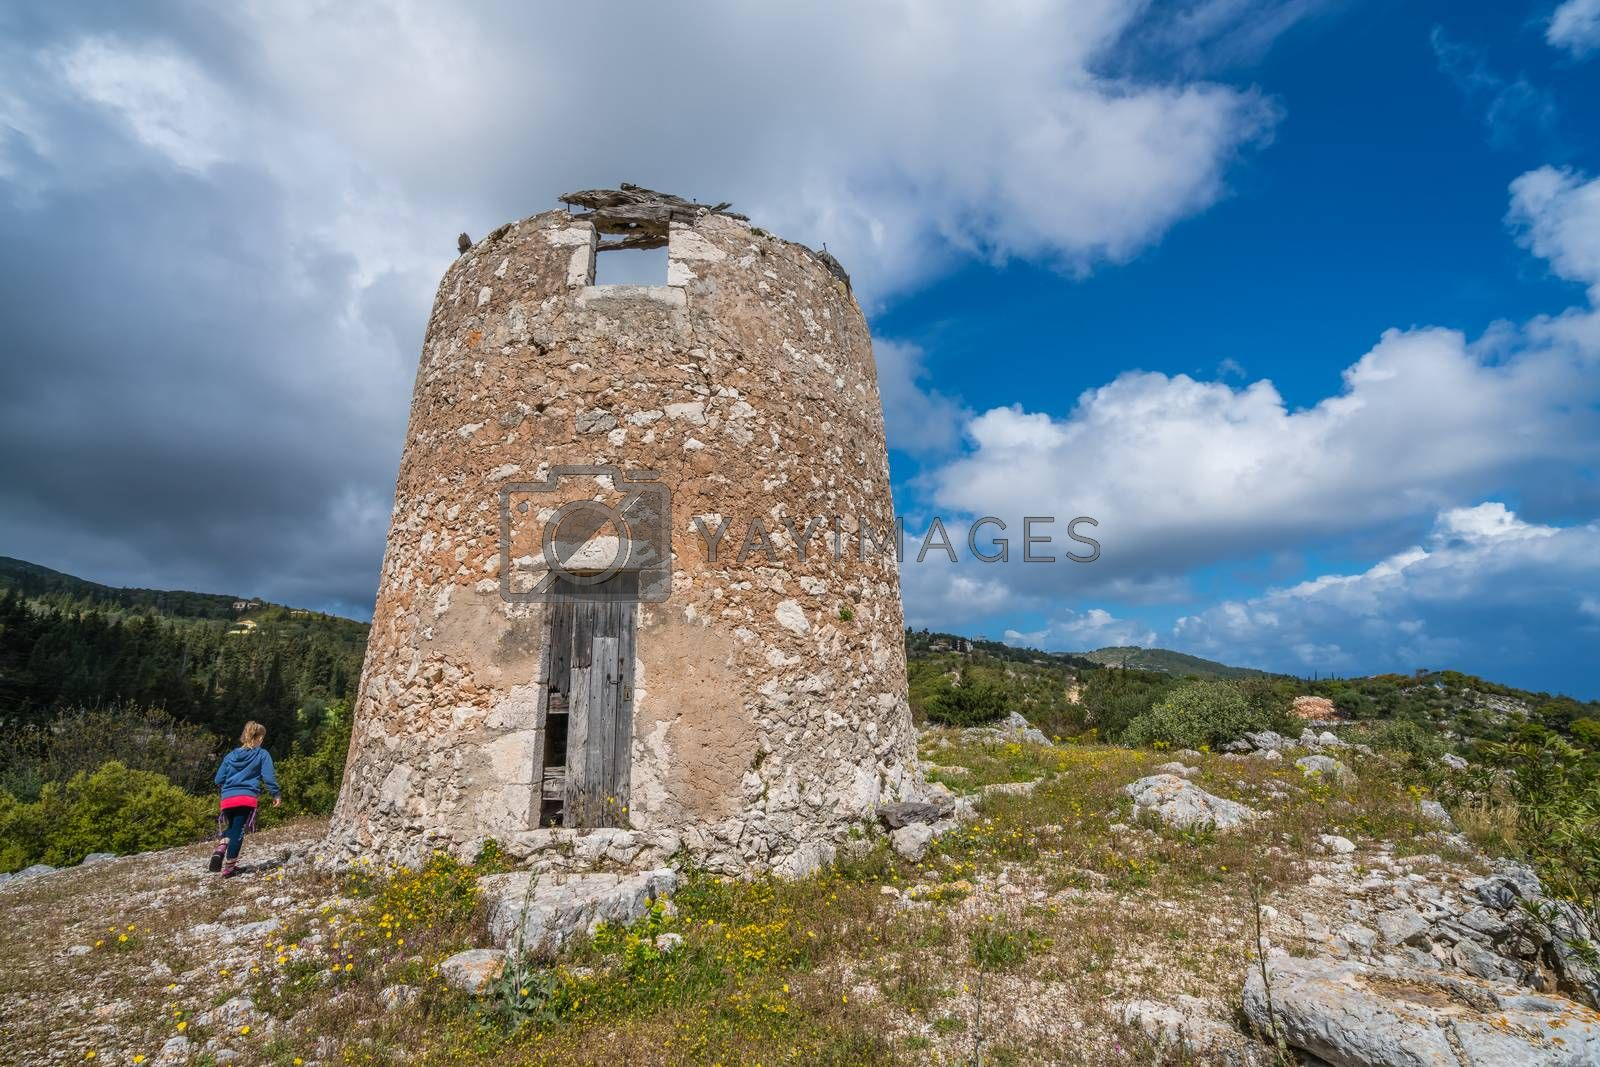 Young girl running towards the remnants of an old windmill in Askos, Zakynthos island, Greece